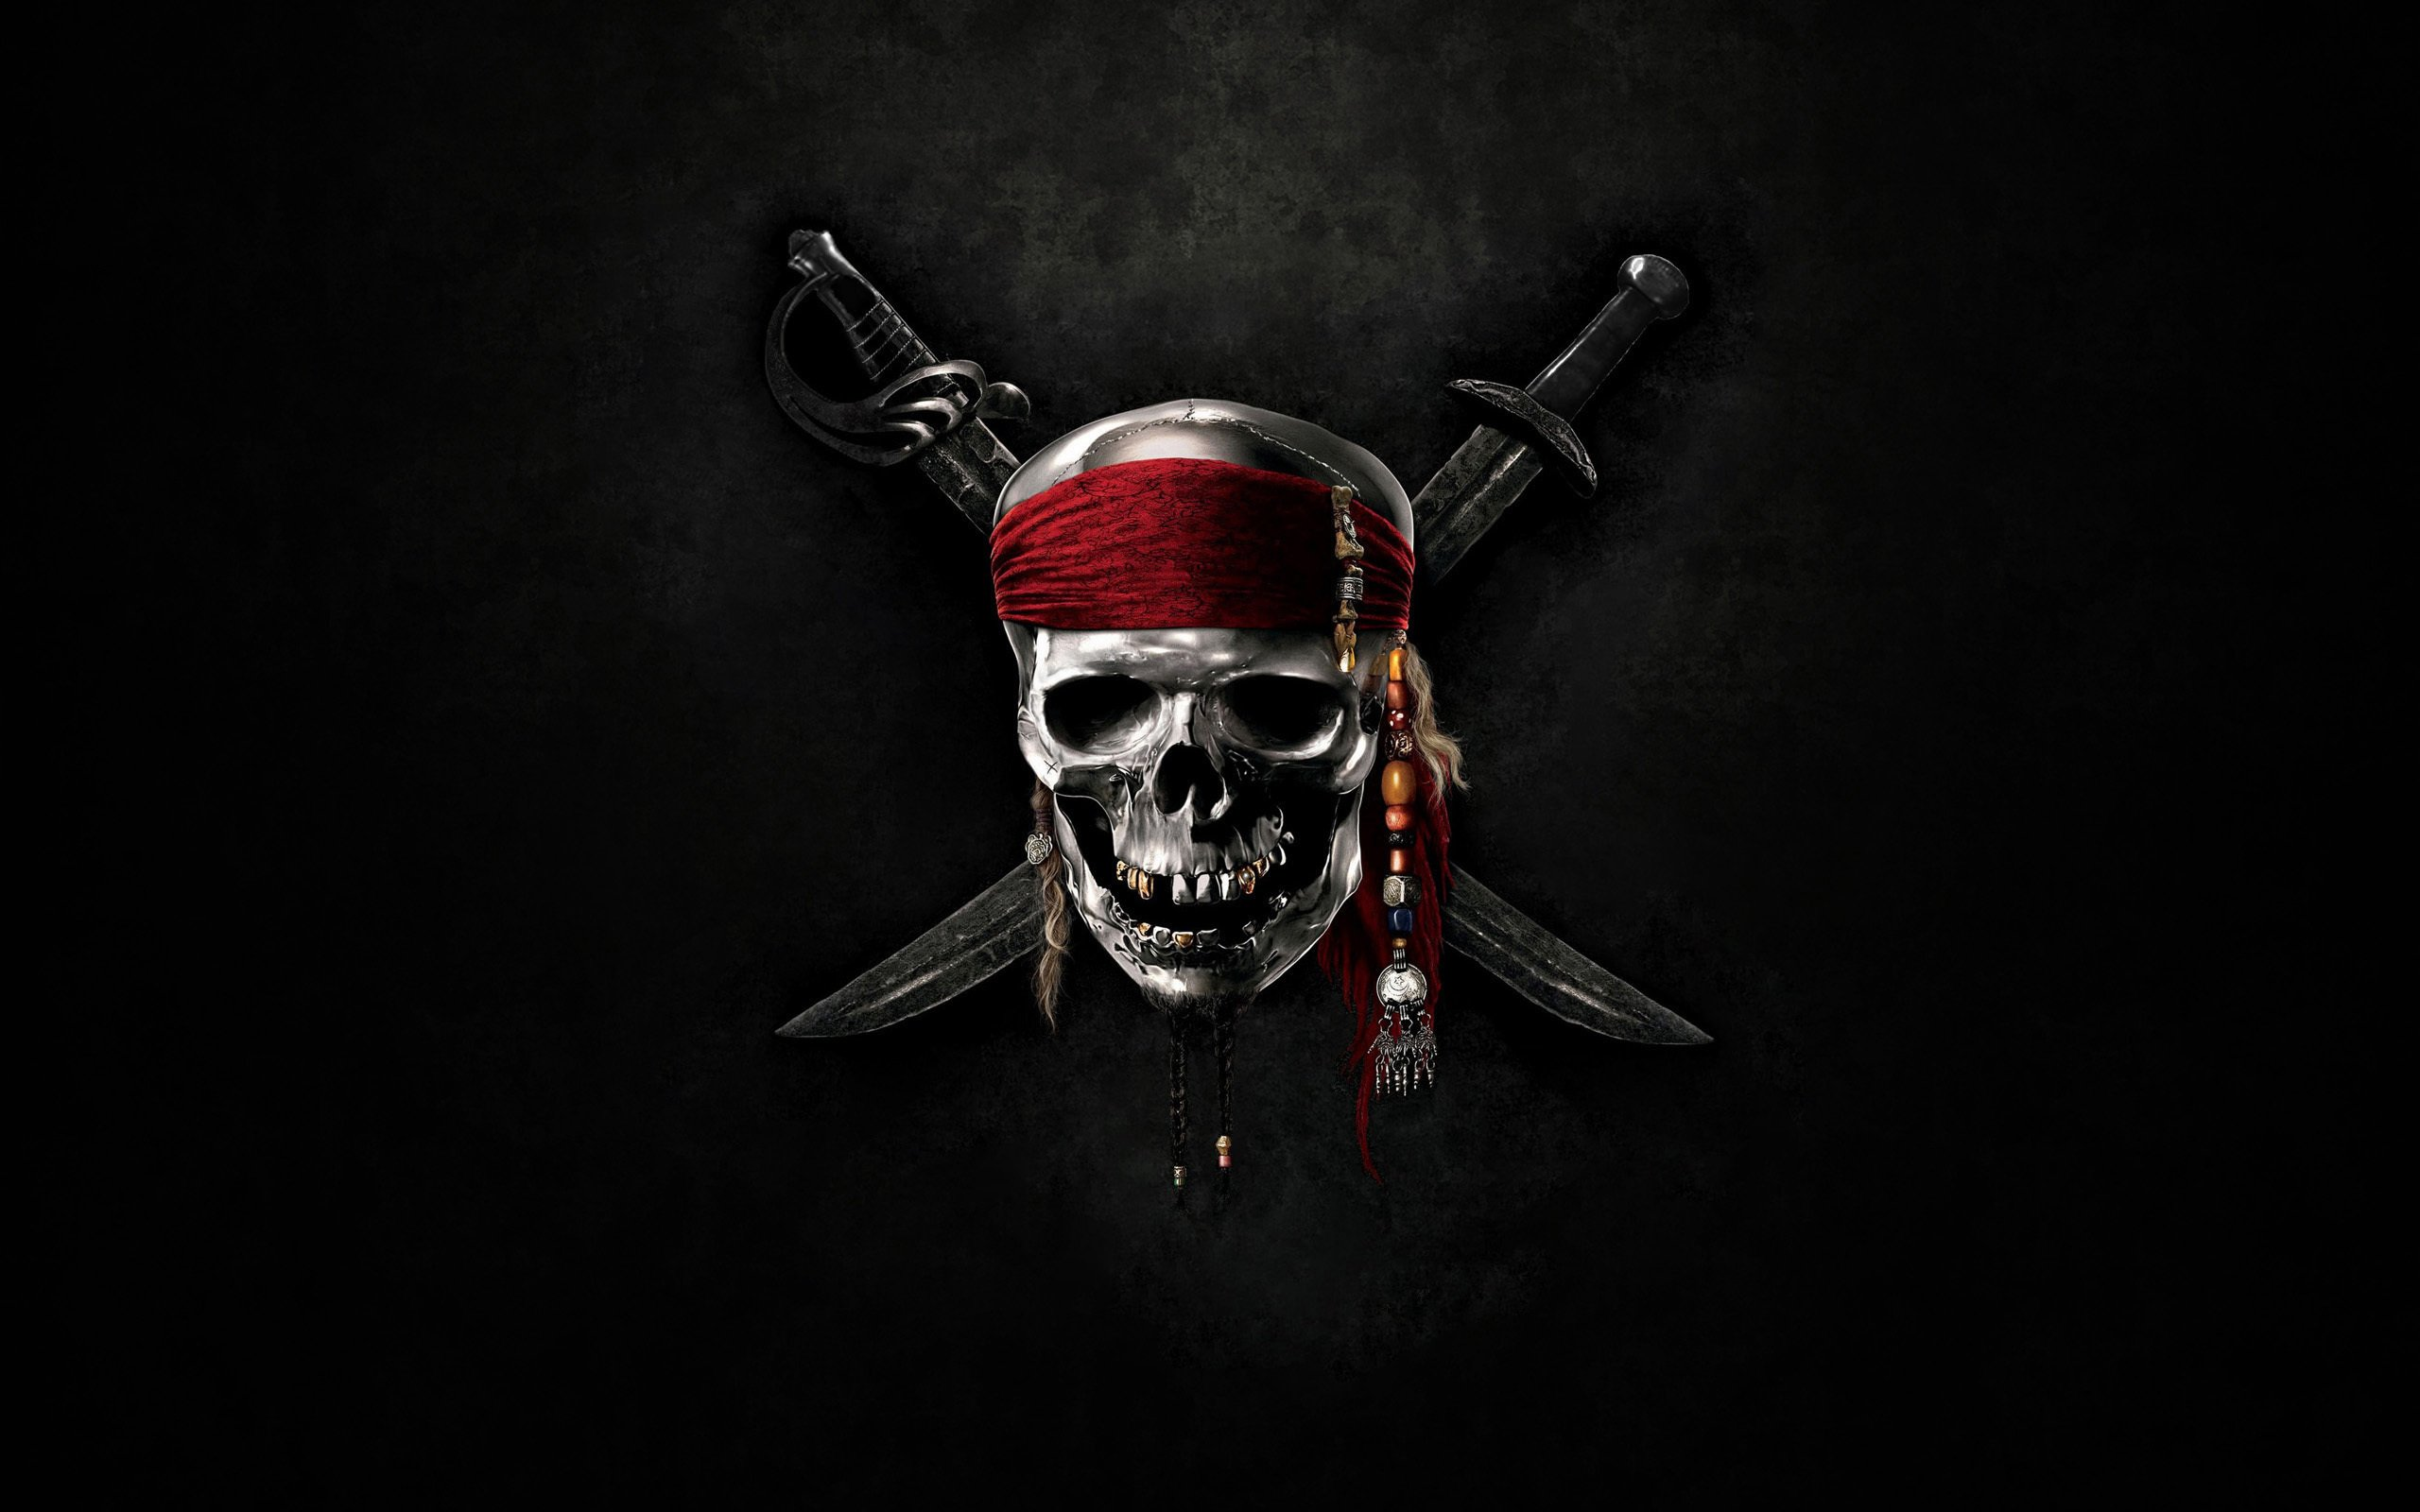 Pirates of caribbean hd wallpaper - Pirates of the caribbean images hd ...